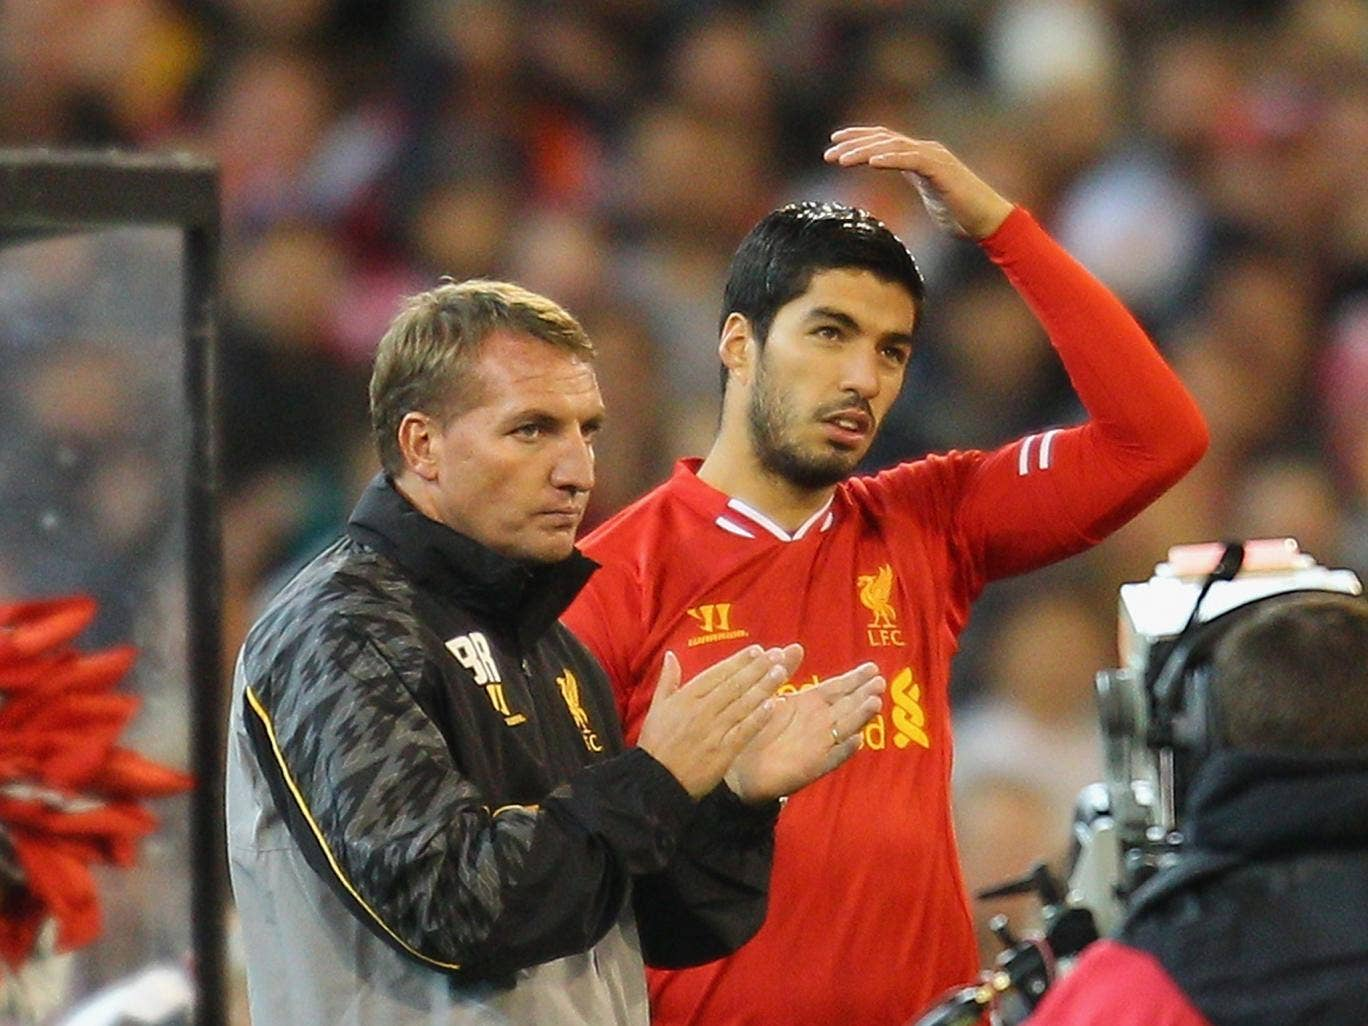 Brendan Rodgers insists Luis Suarez understands why Liverpool are refusing to sell him to Arsenal